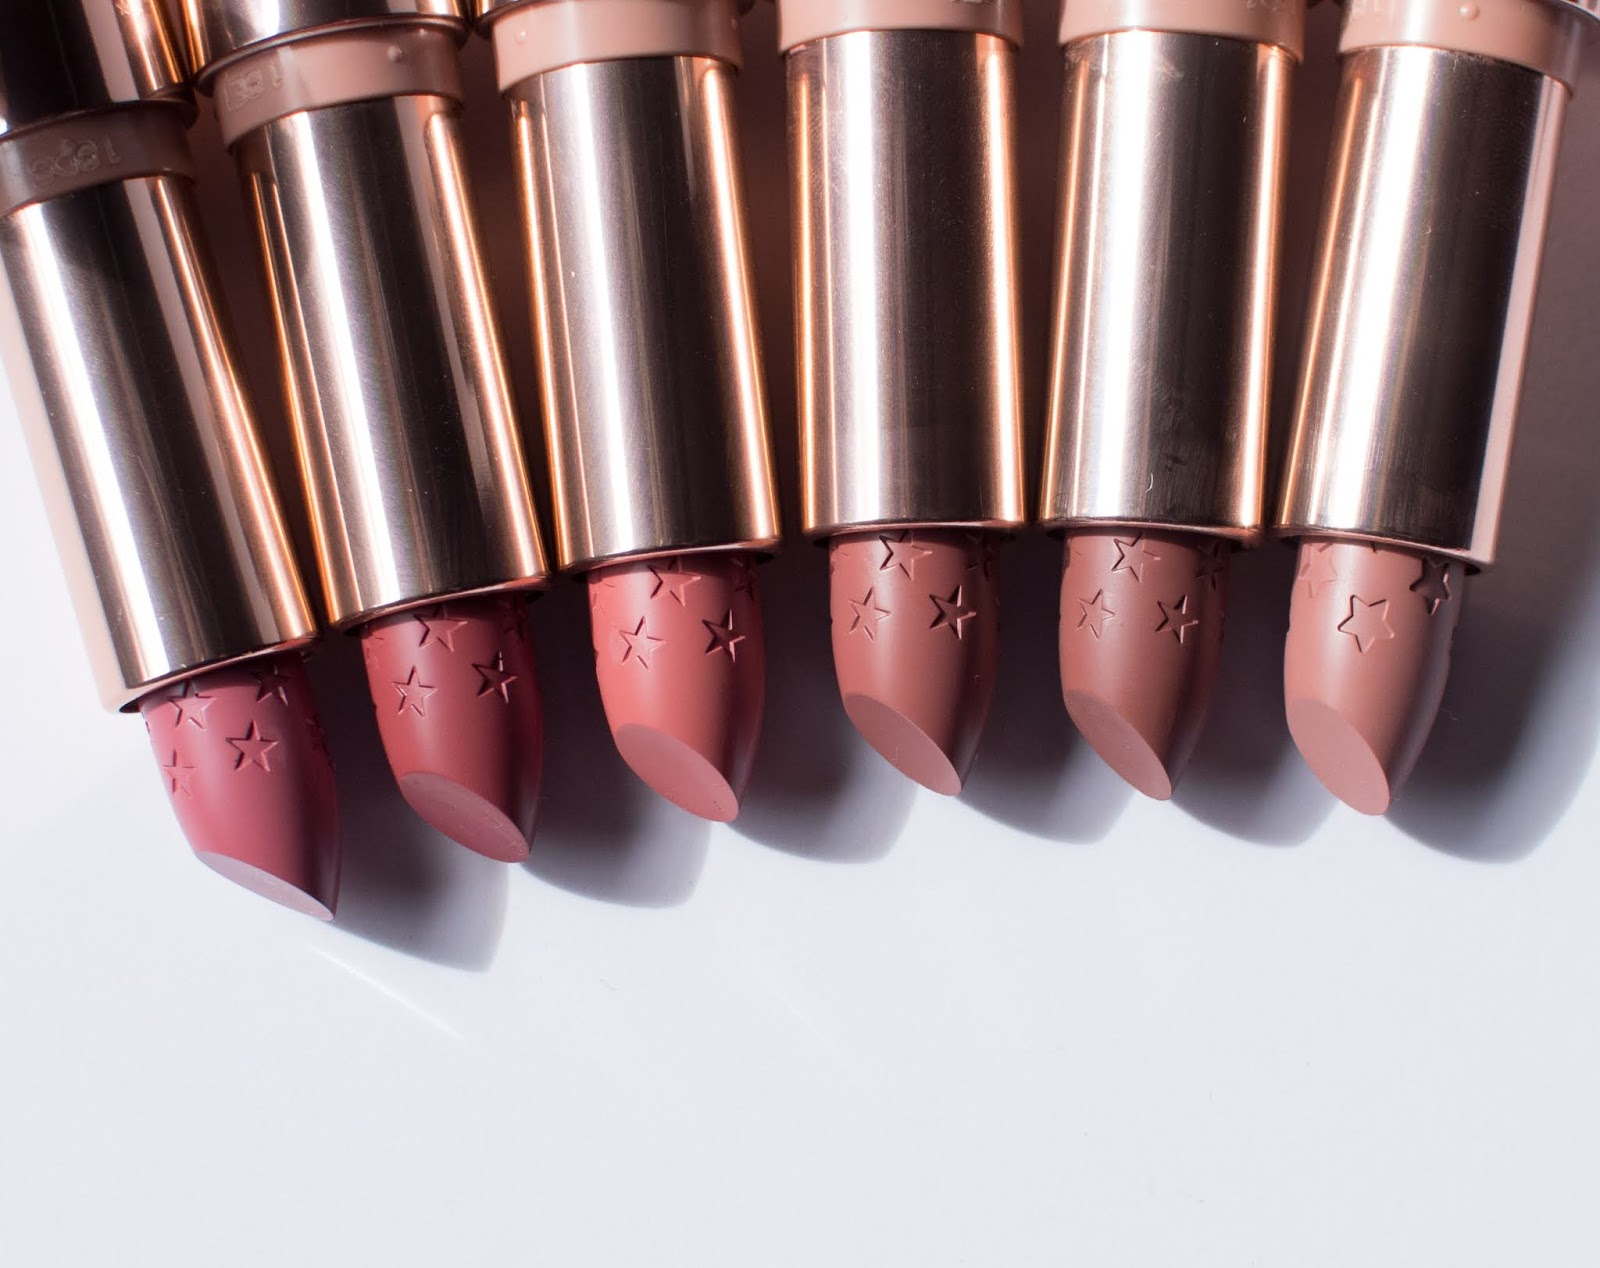 Colourpop Lux Lipsticks